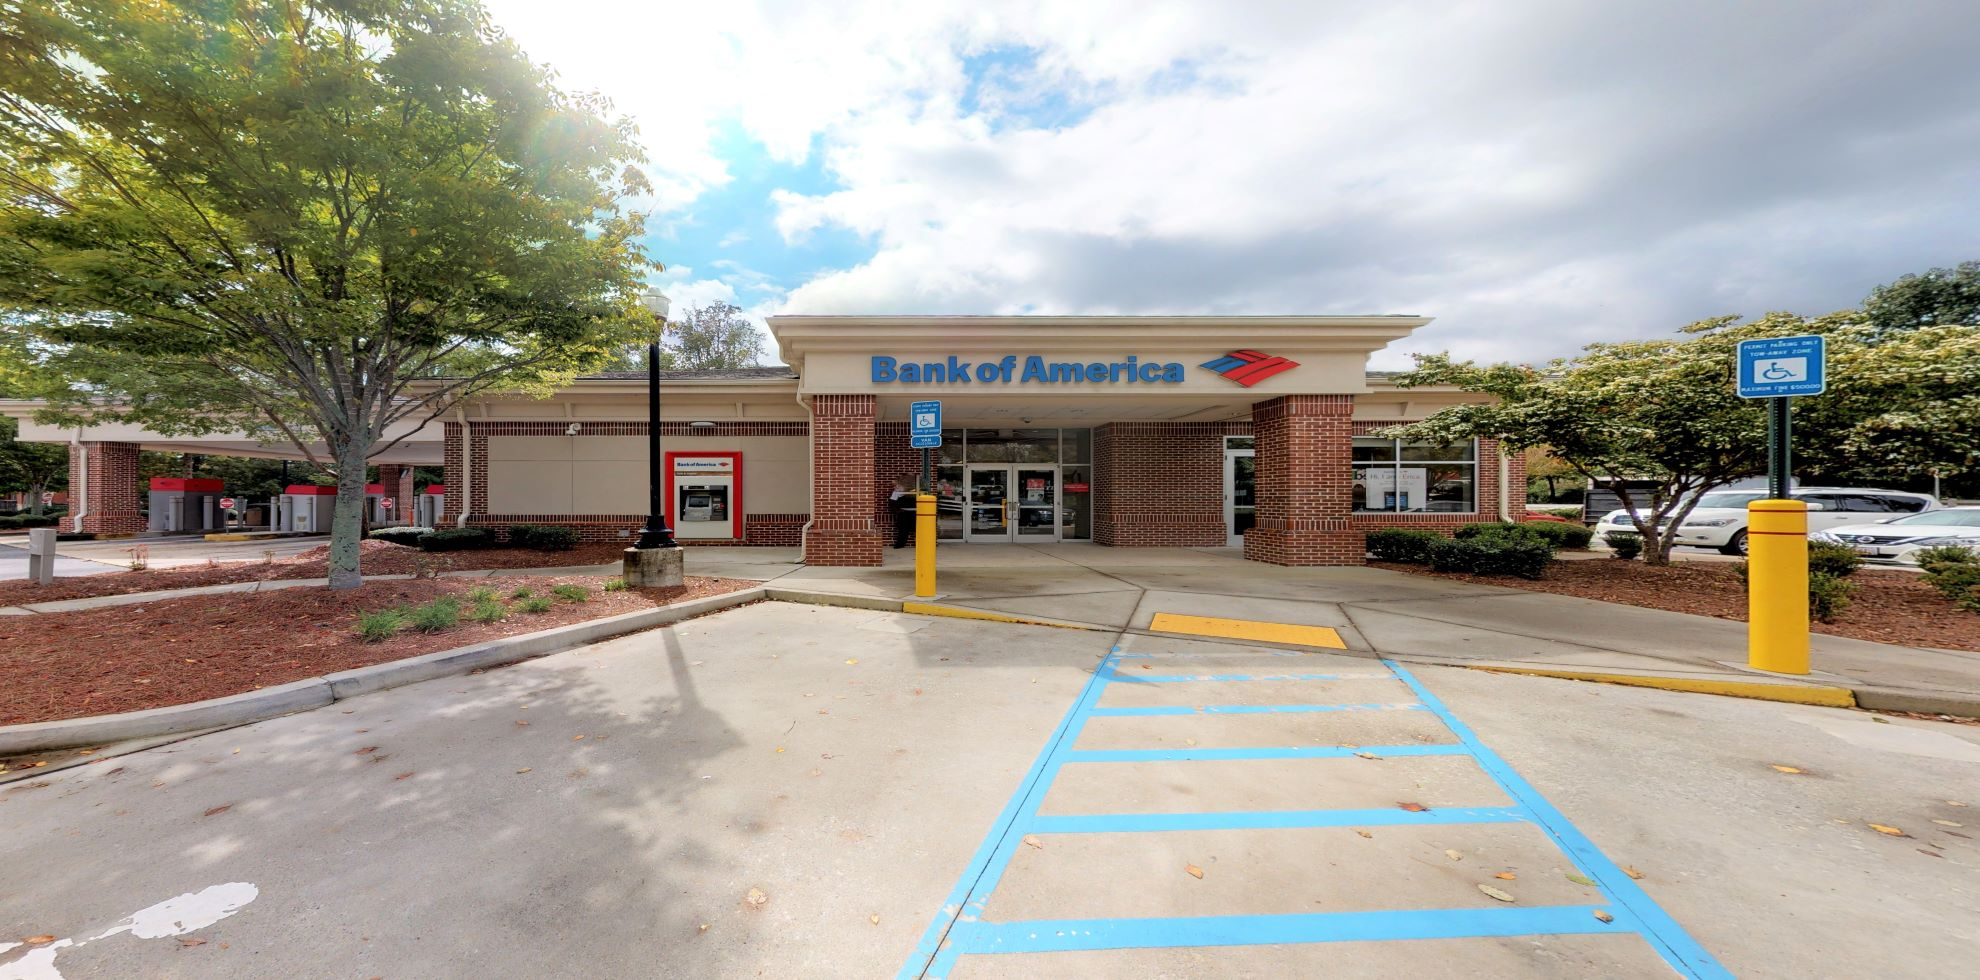 Bank of America financial center with drive-thru ATM | 700 W Crossville Rd, Roswell, GA 30075